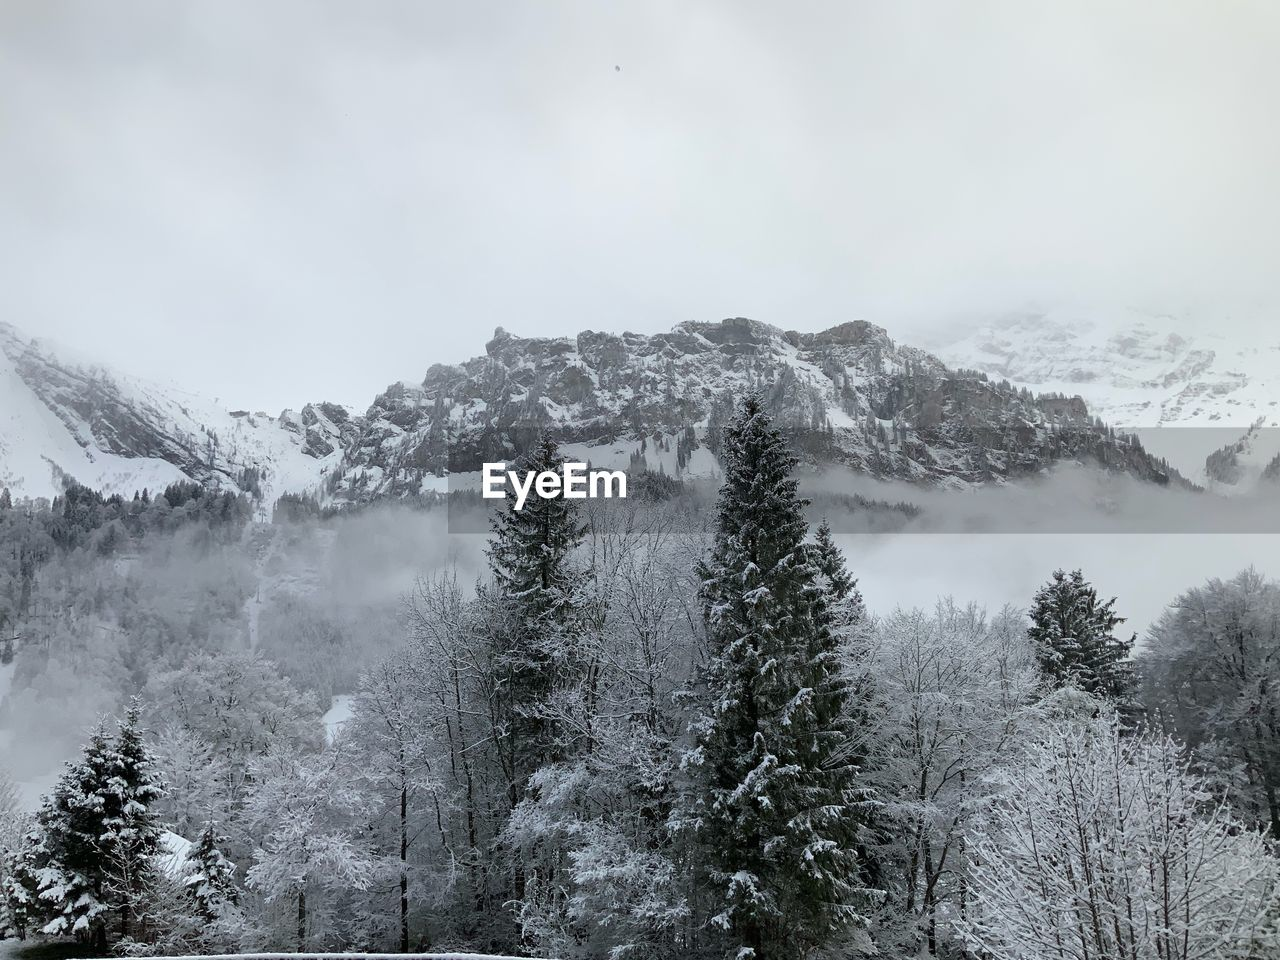 tree, plant, beauty in nature, cold temperature, tranquil scene, tranquility, mountain, winter, scenics - nature, sky, snow, no people, non-urban scene, nature, environment, day, growth, idyllic, fog, outdoors, snowcapped mountain, coniferous tree